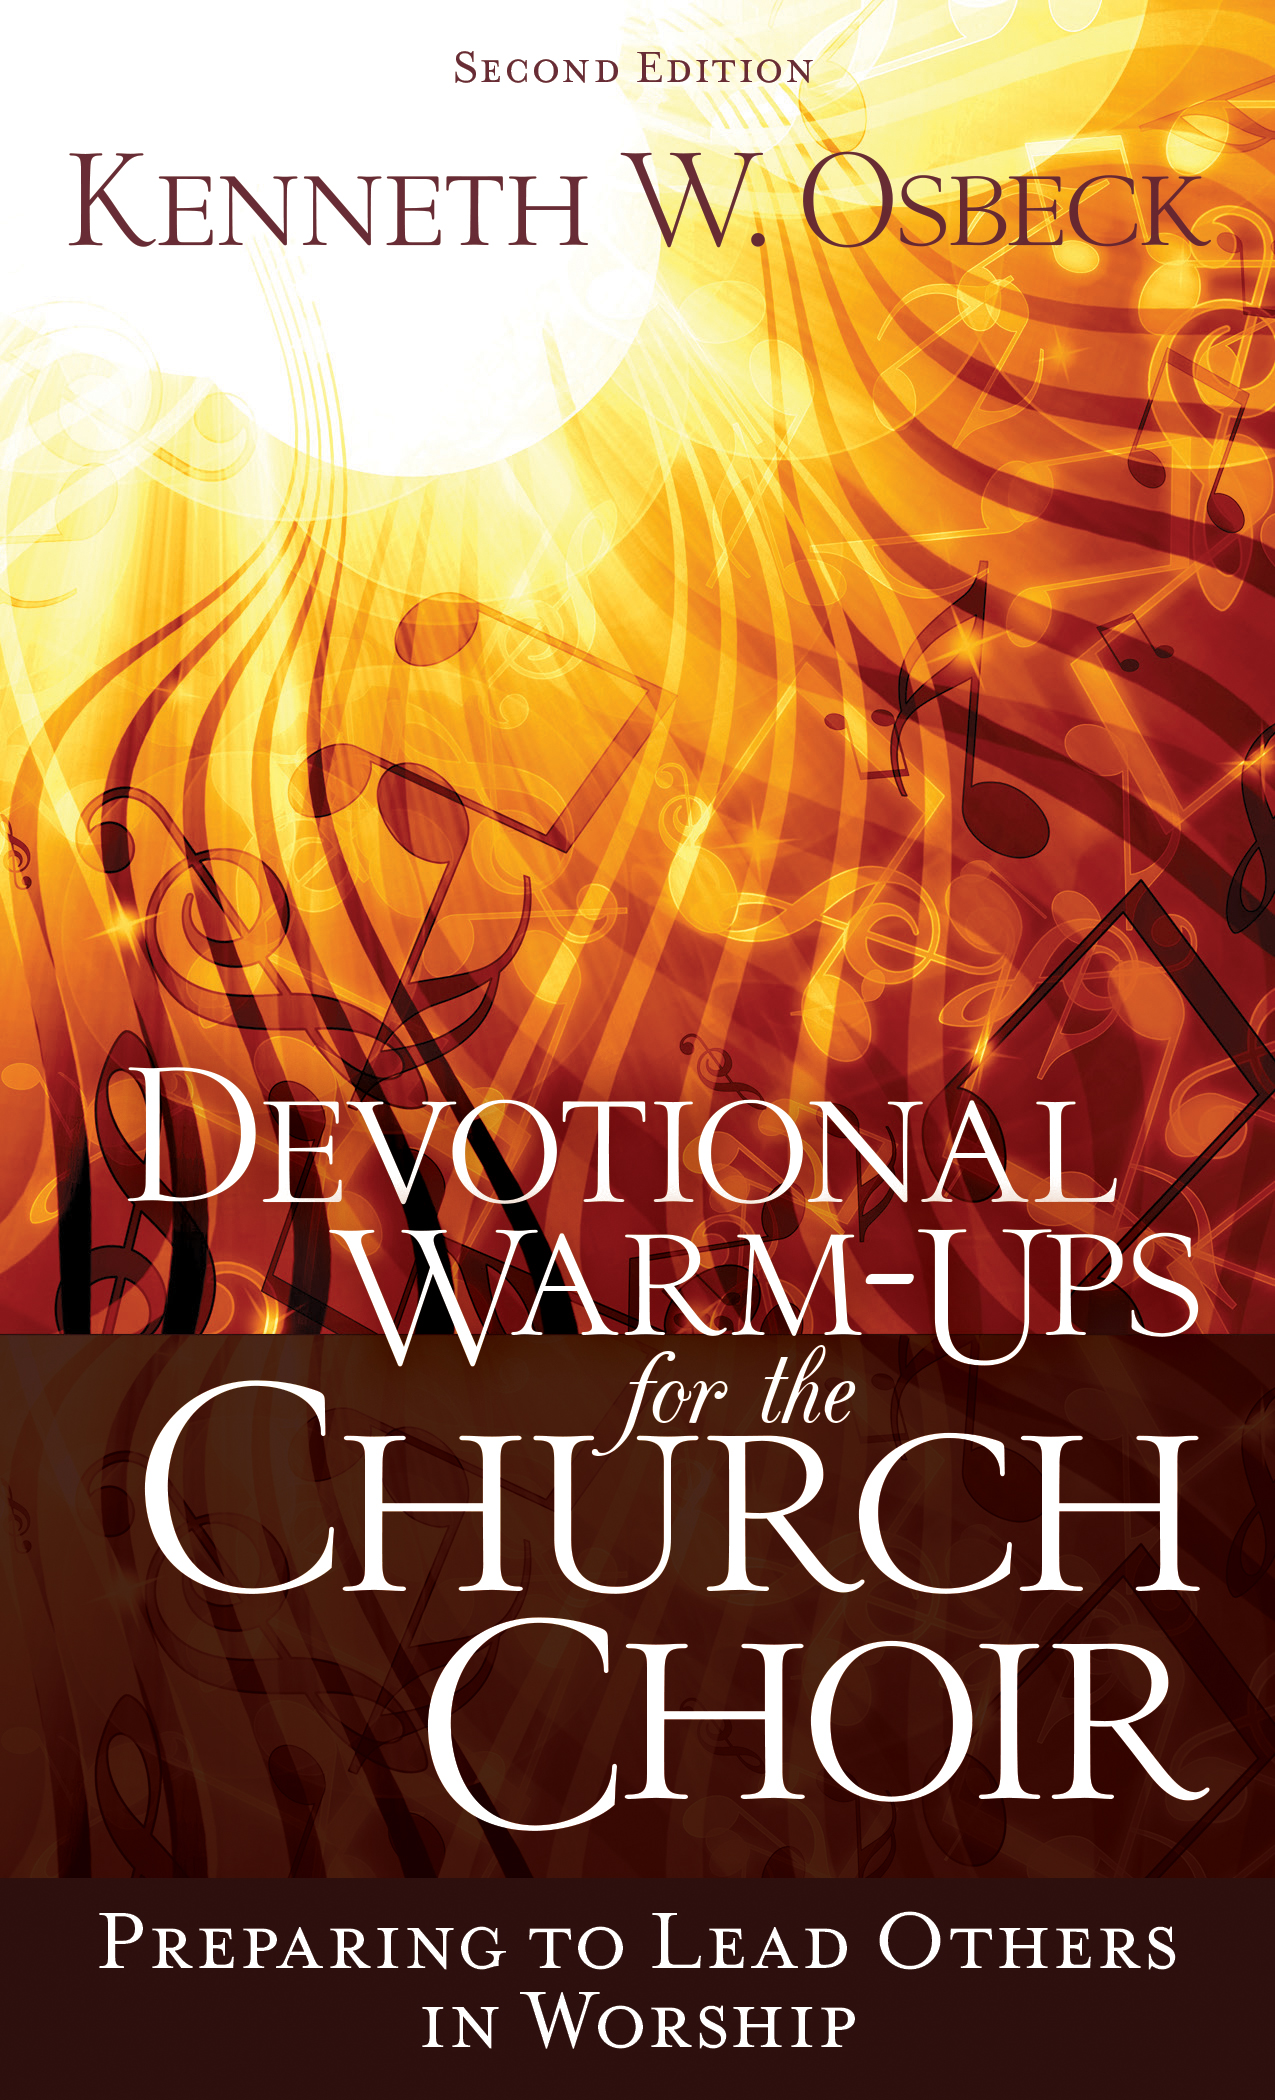 Devotional Warm-Ups for the Church Choir, Second Edition